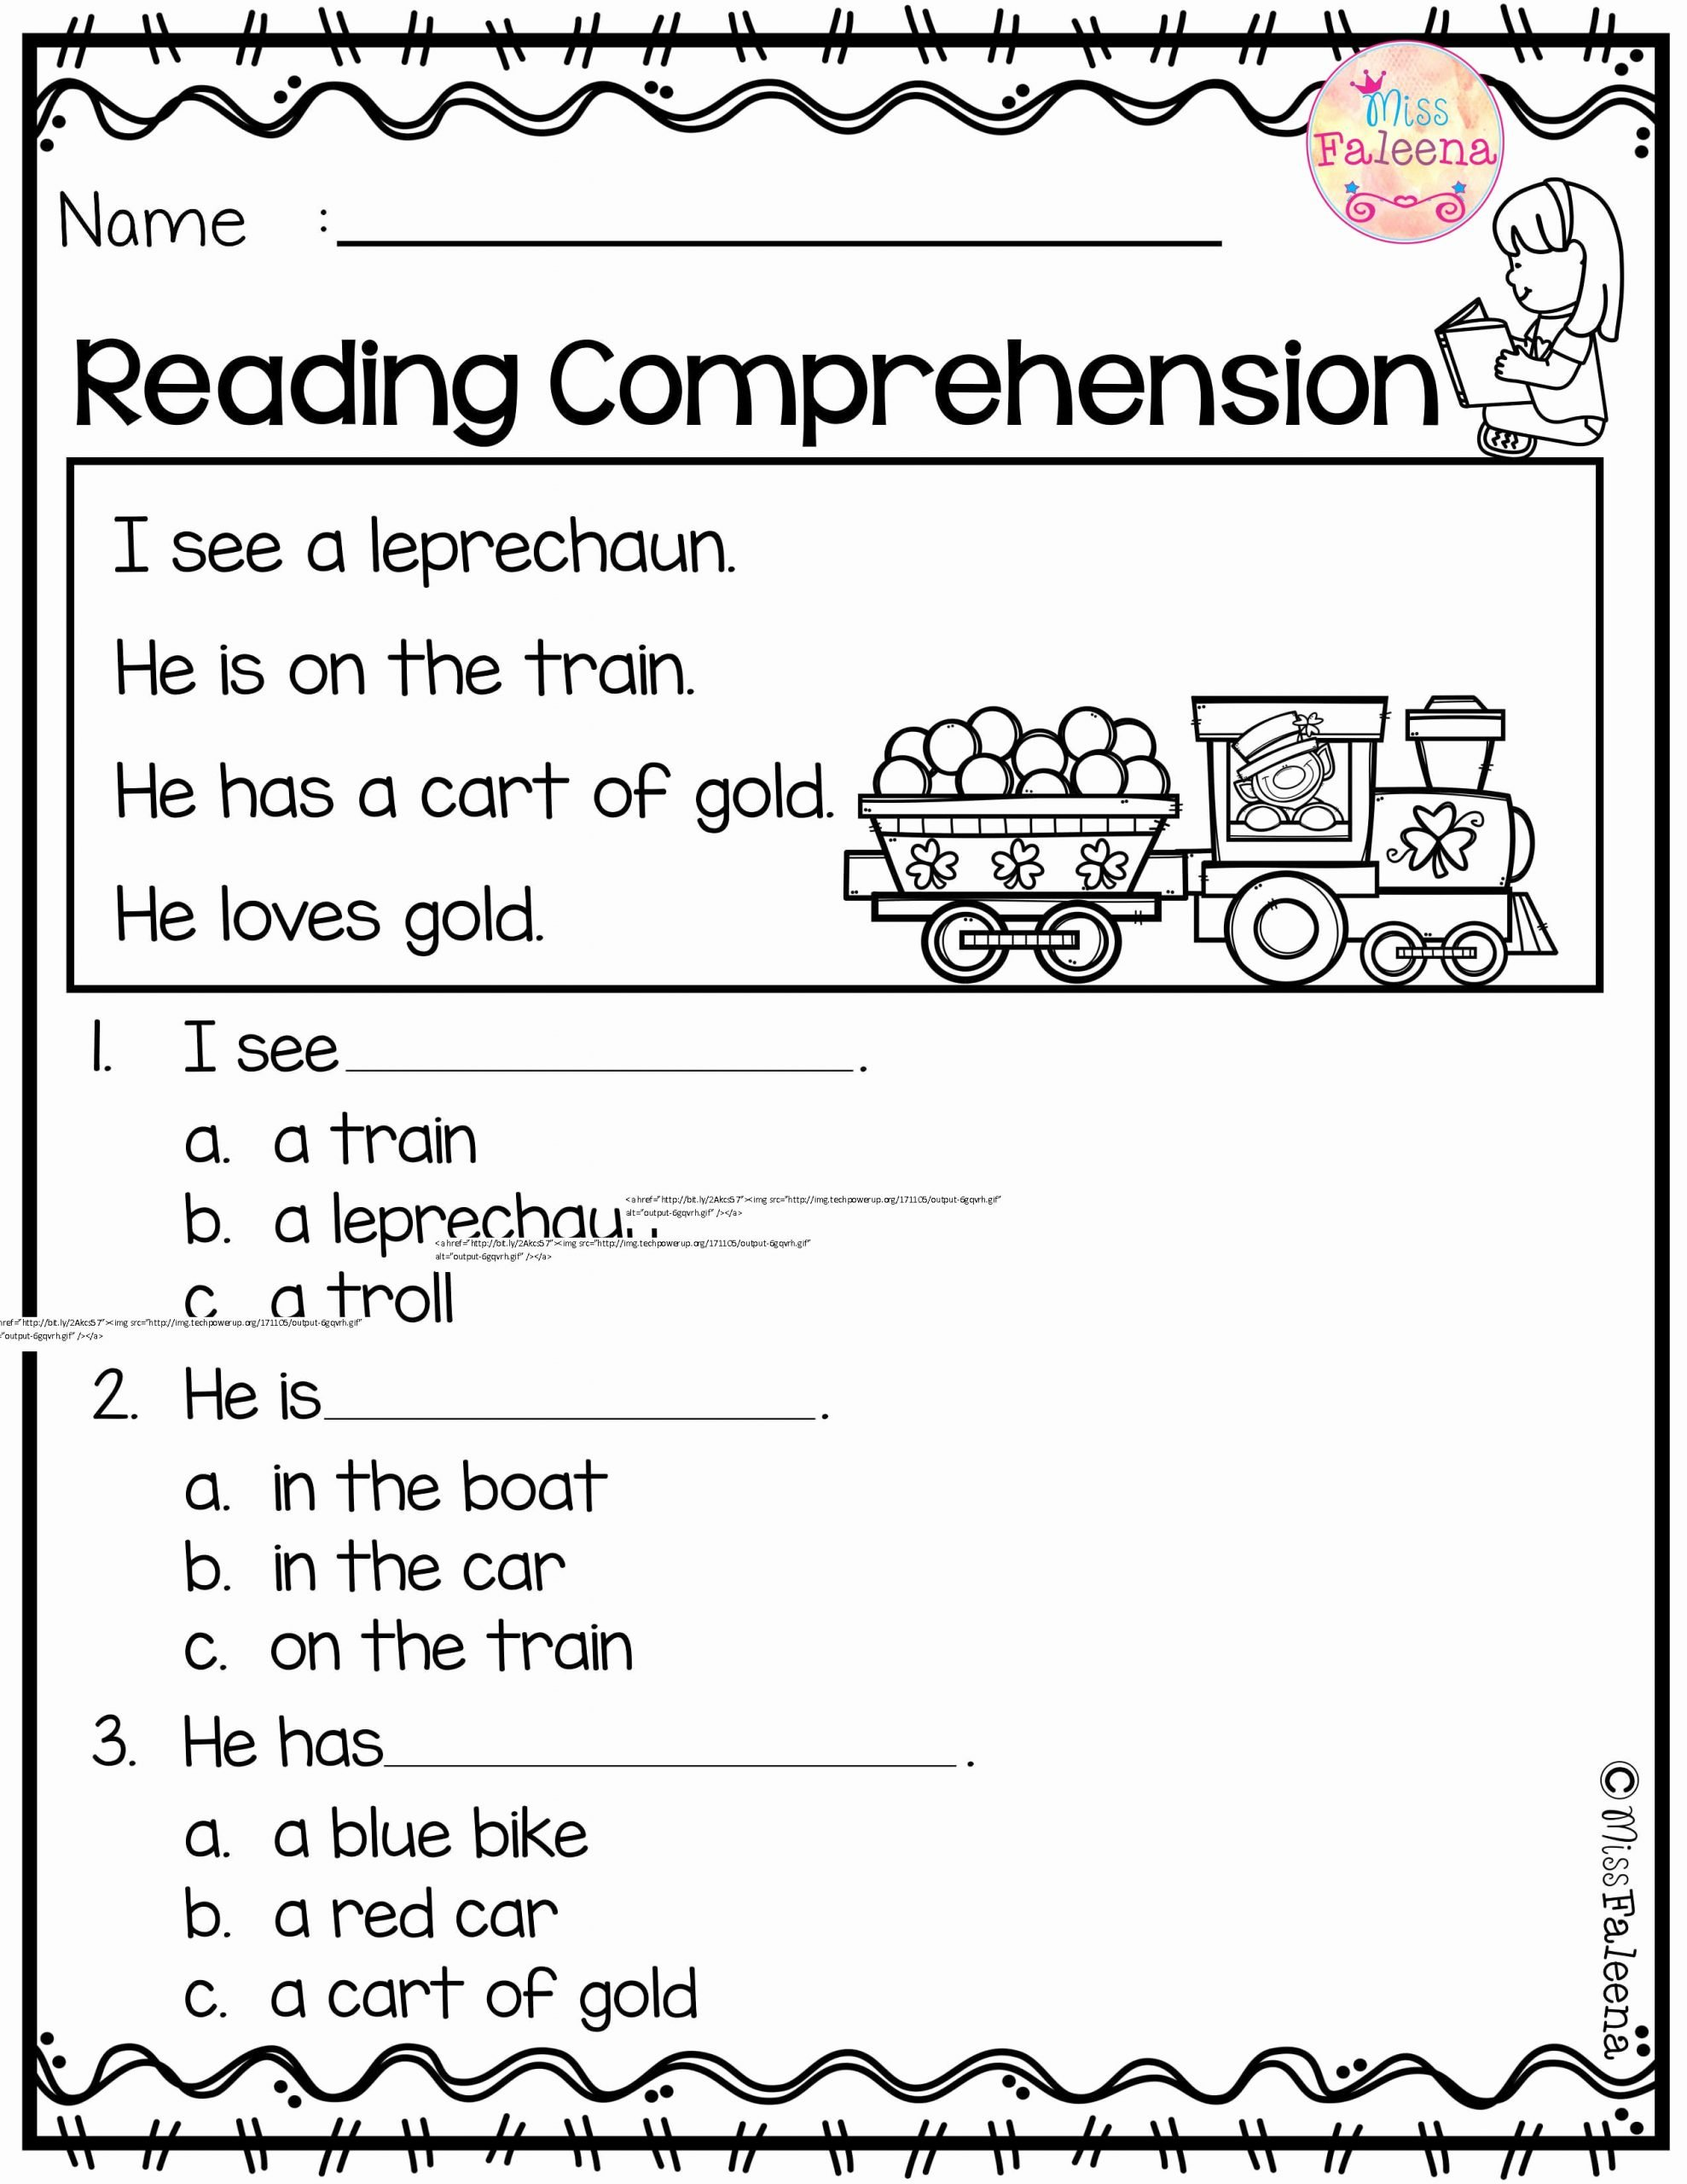 Reading Comprehension Kindergarten Worksheets Free Fresh March Reading Prehension is Suitable for Kindergarten